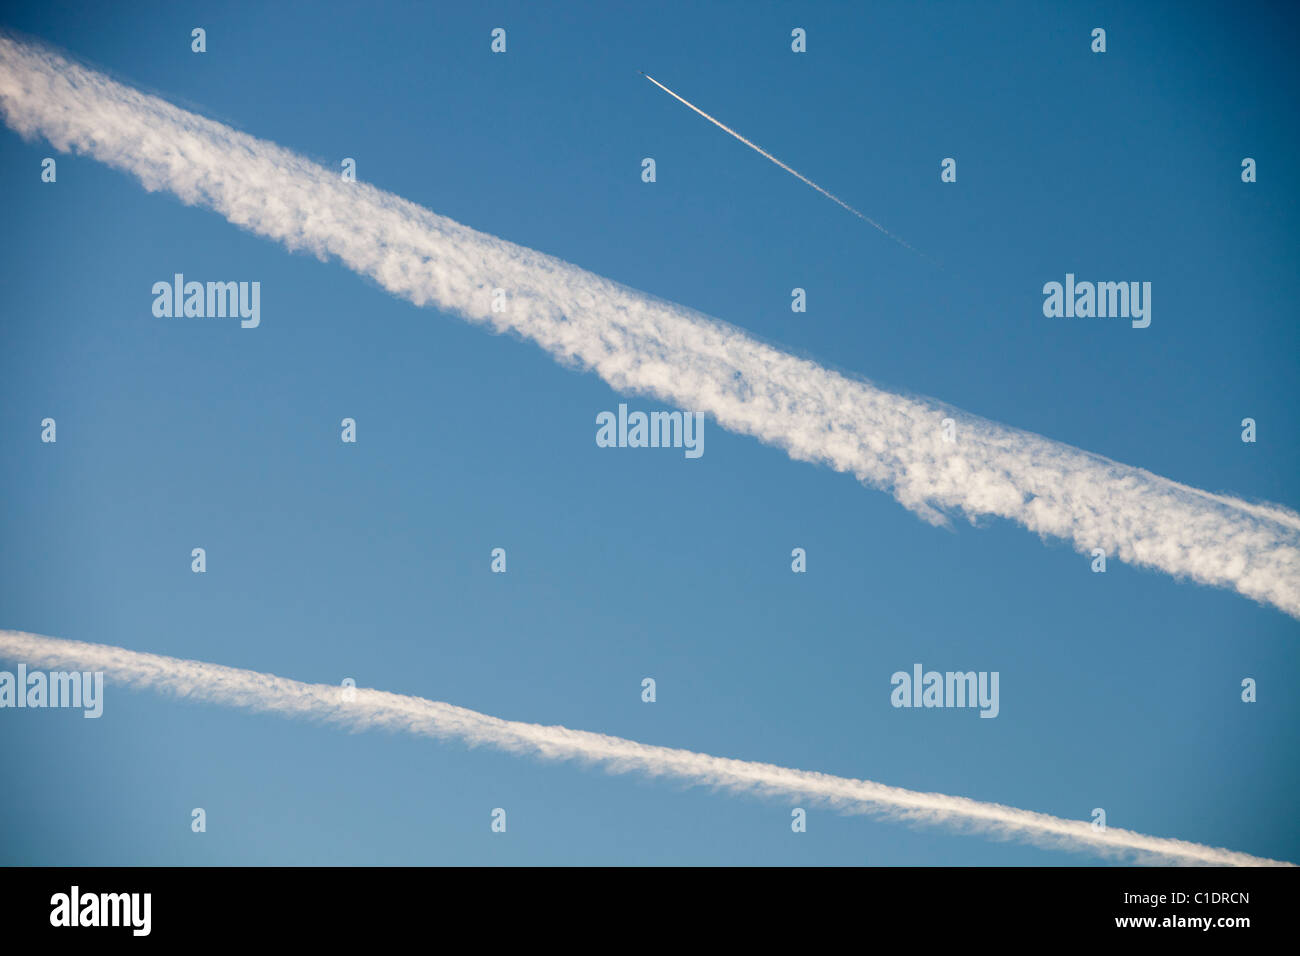 A jet plane flying over the Lake District, UK, with contrails in the sky. - Stock Image